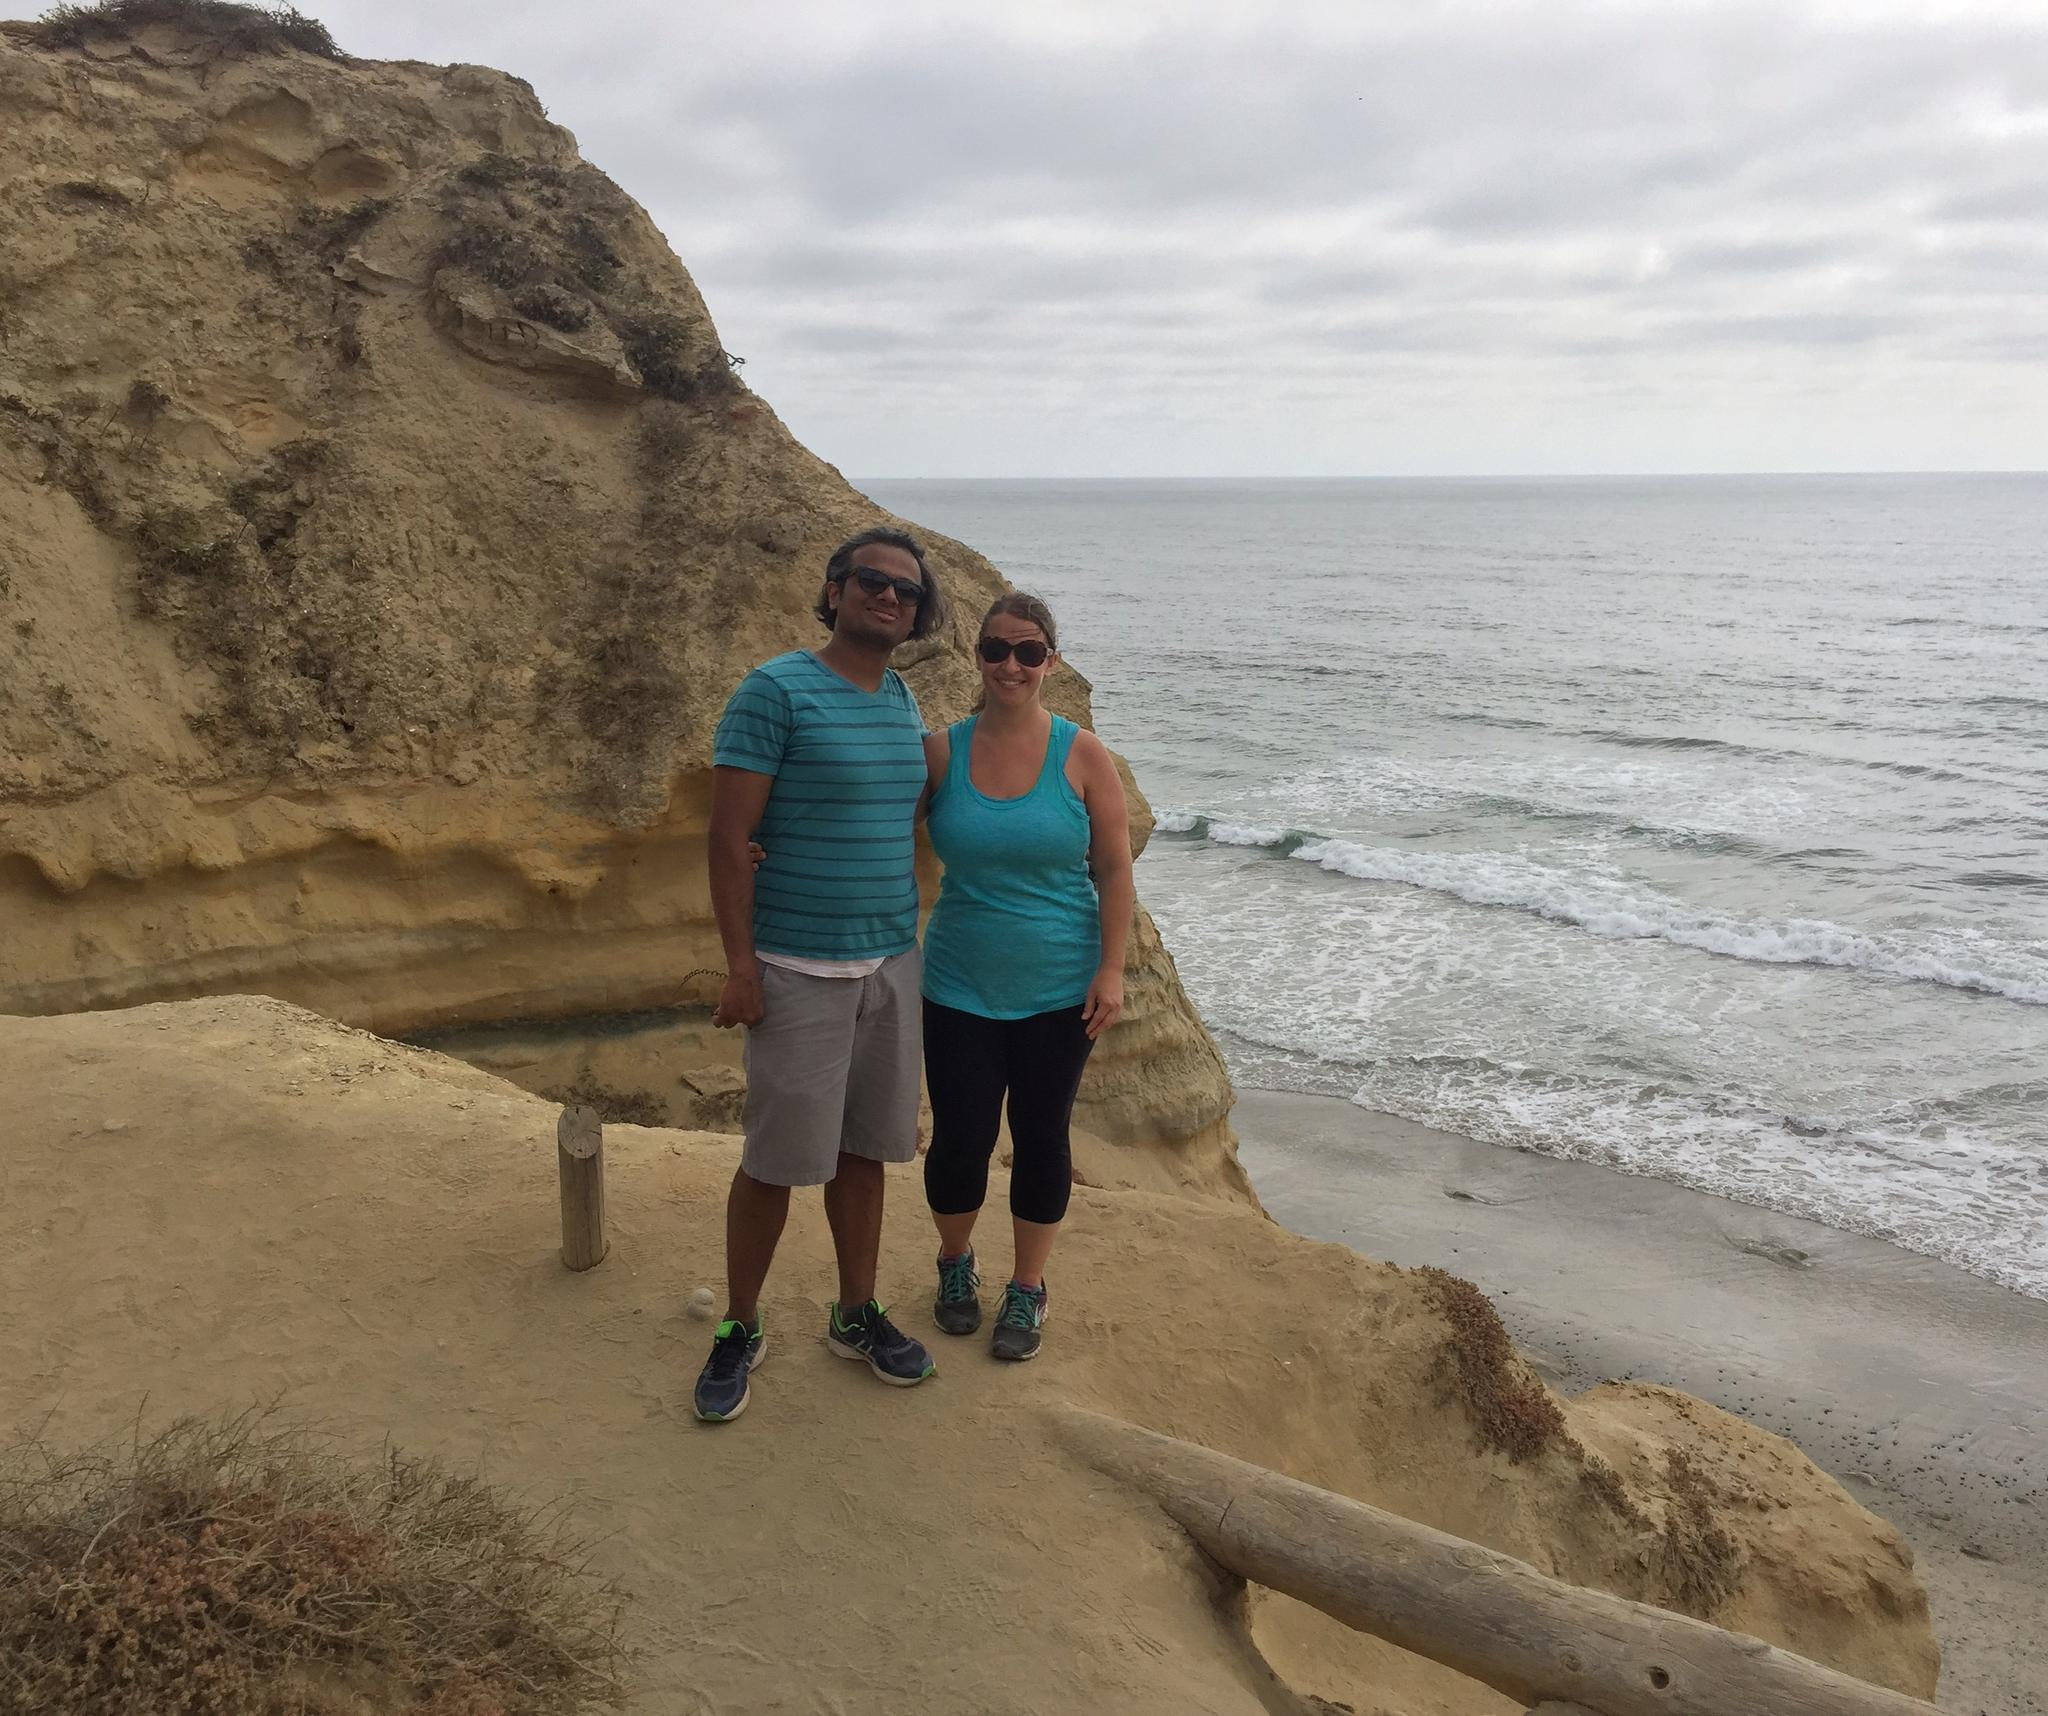 Hiking in San Diego